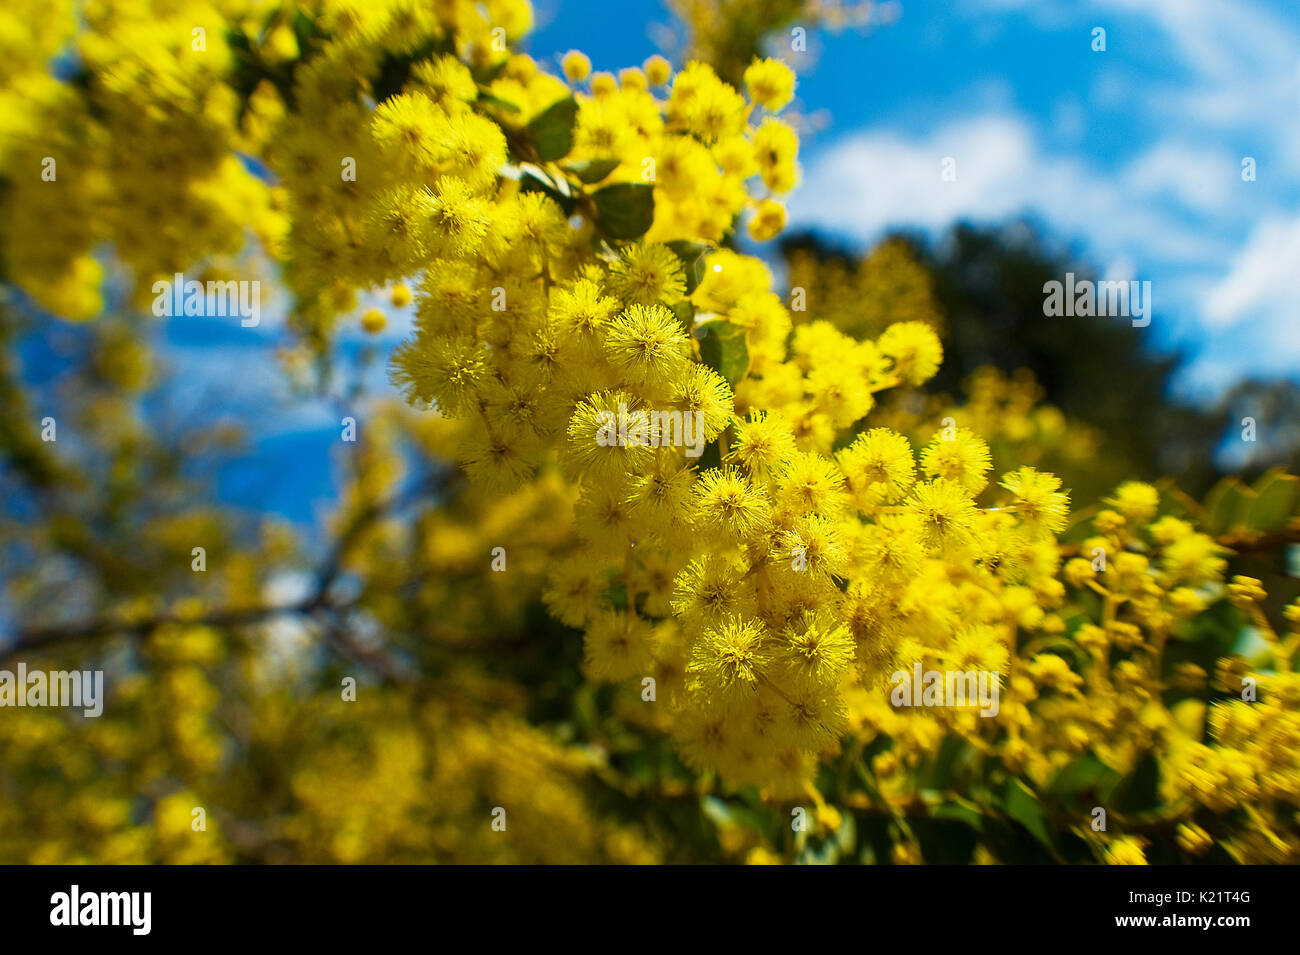 wattle tree in blossom - Stock Image